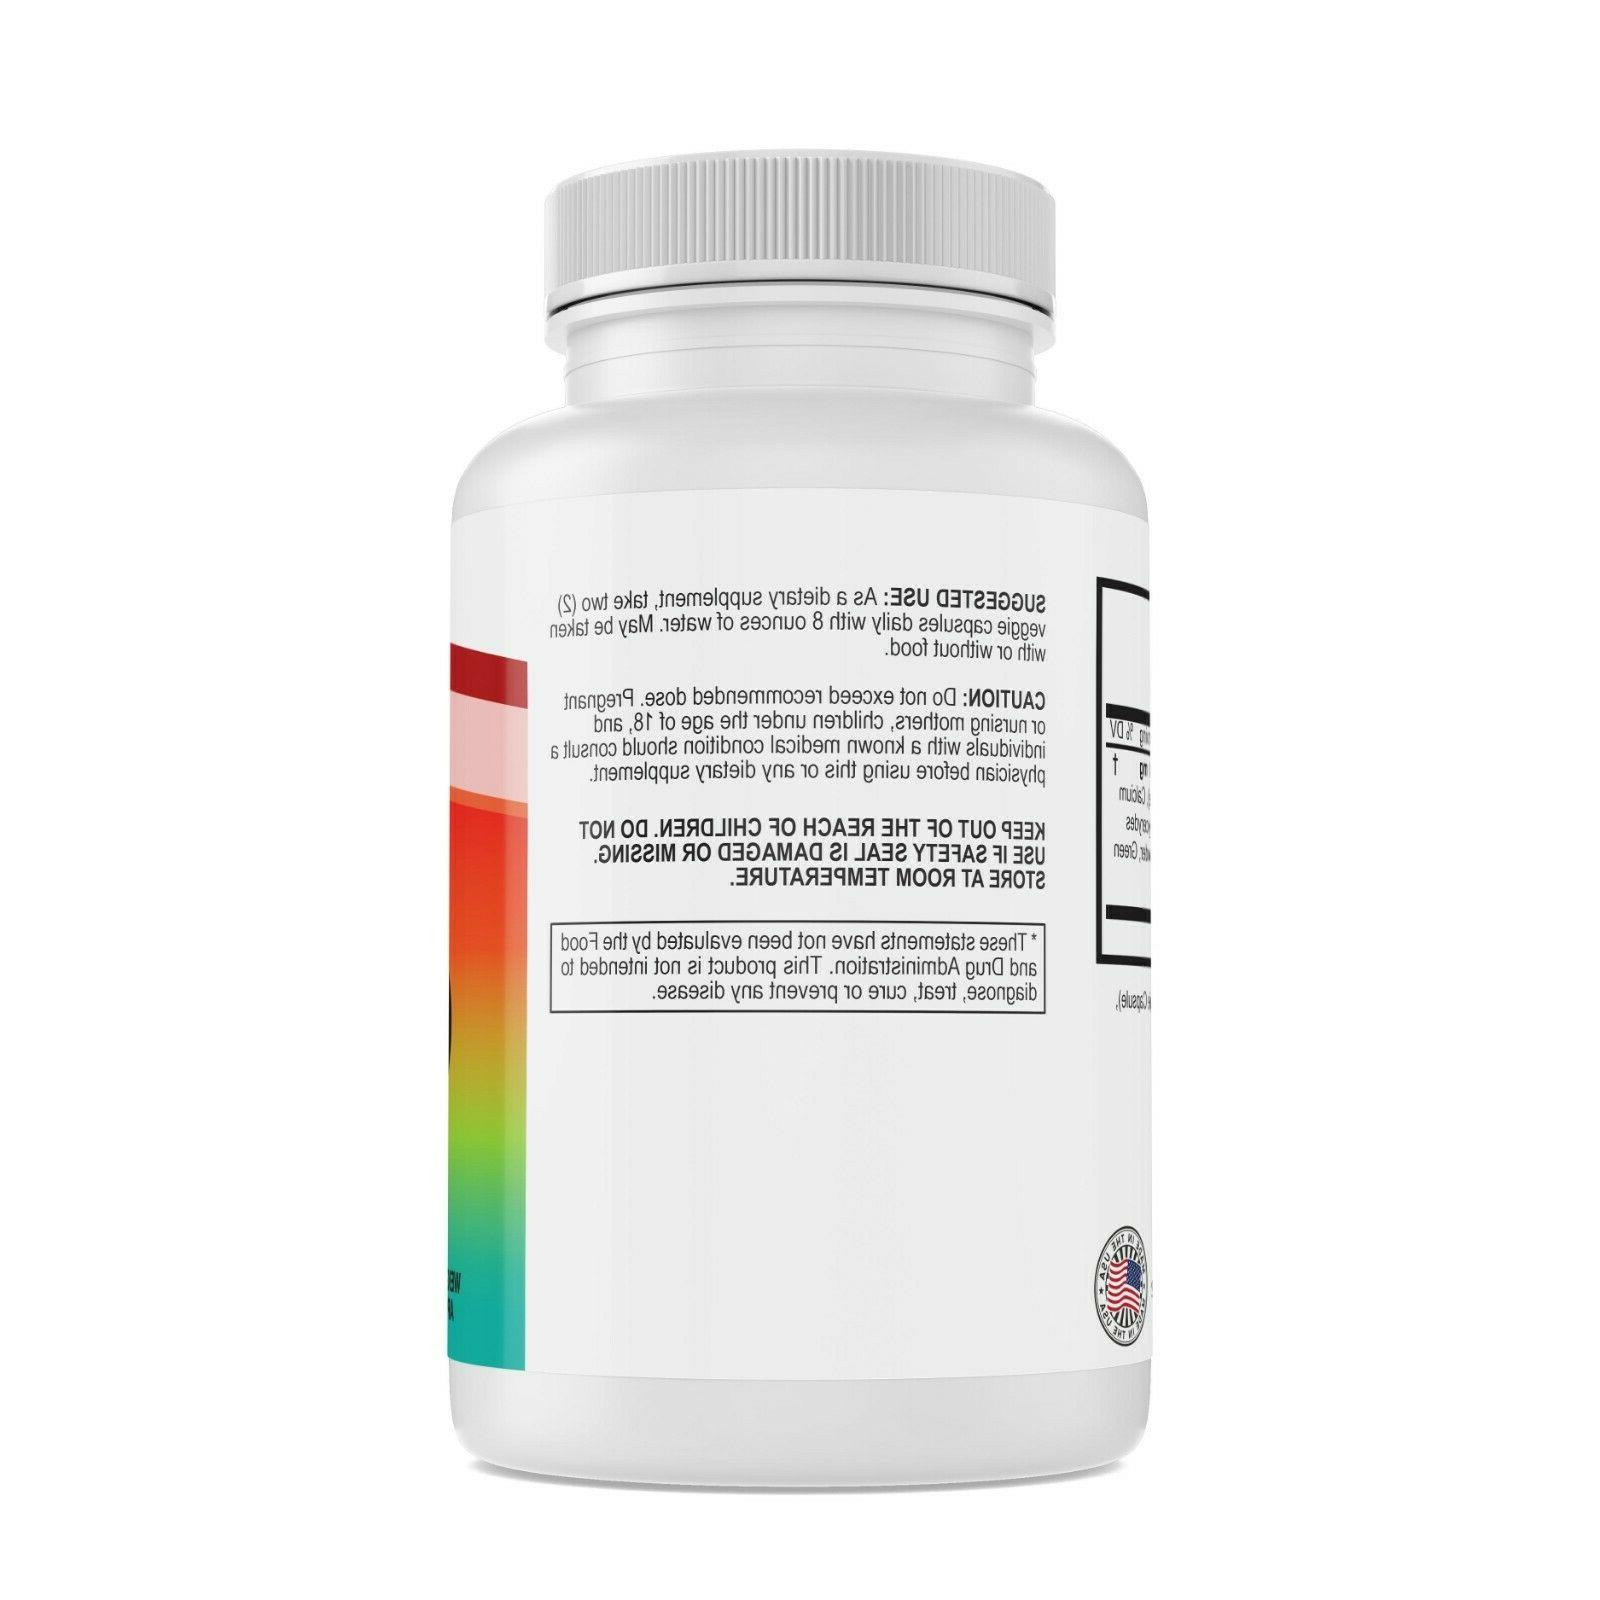 Meticore Control Diet Weight